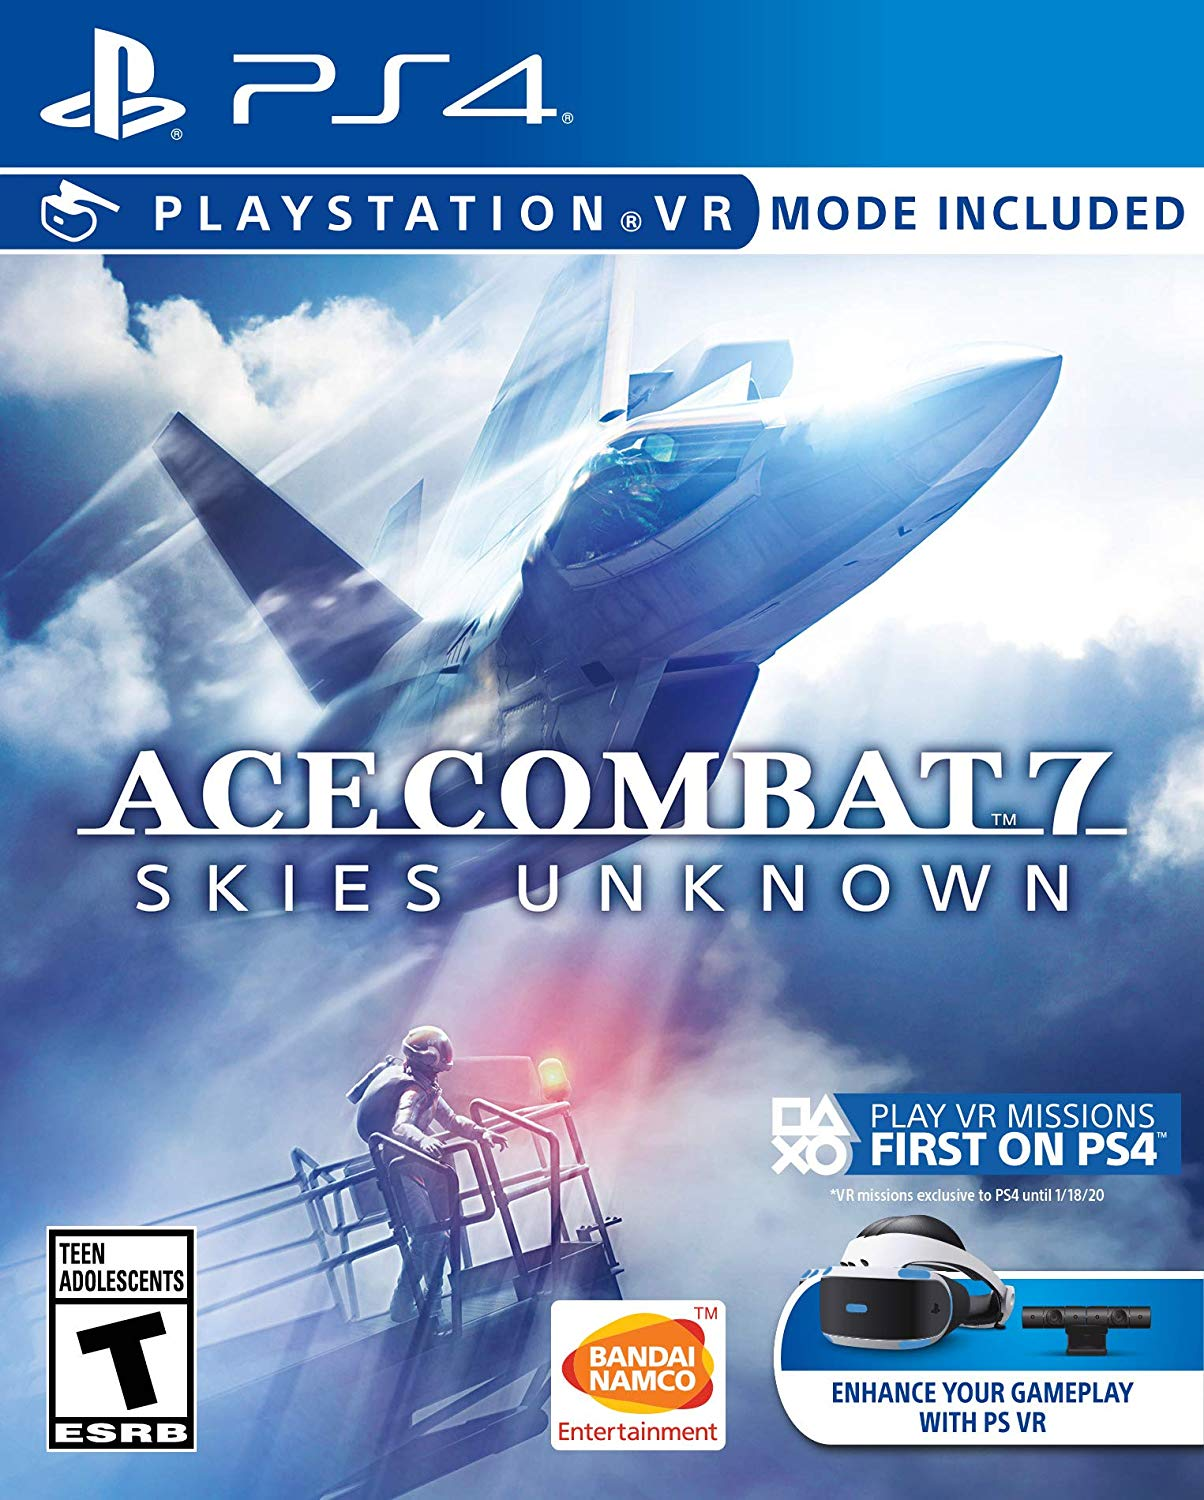 PS4 PSVR Ace Combat 7: Skies Unknown em Português e Espanol